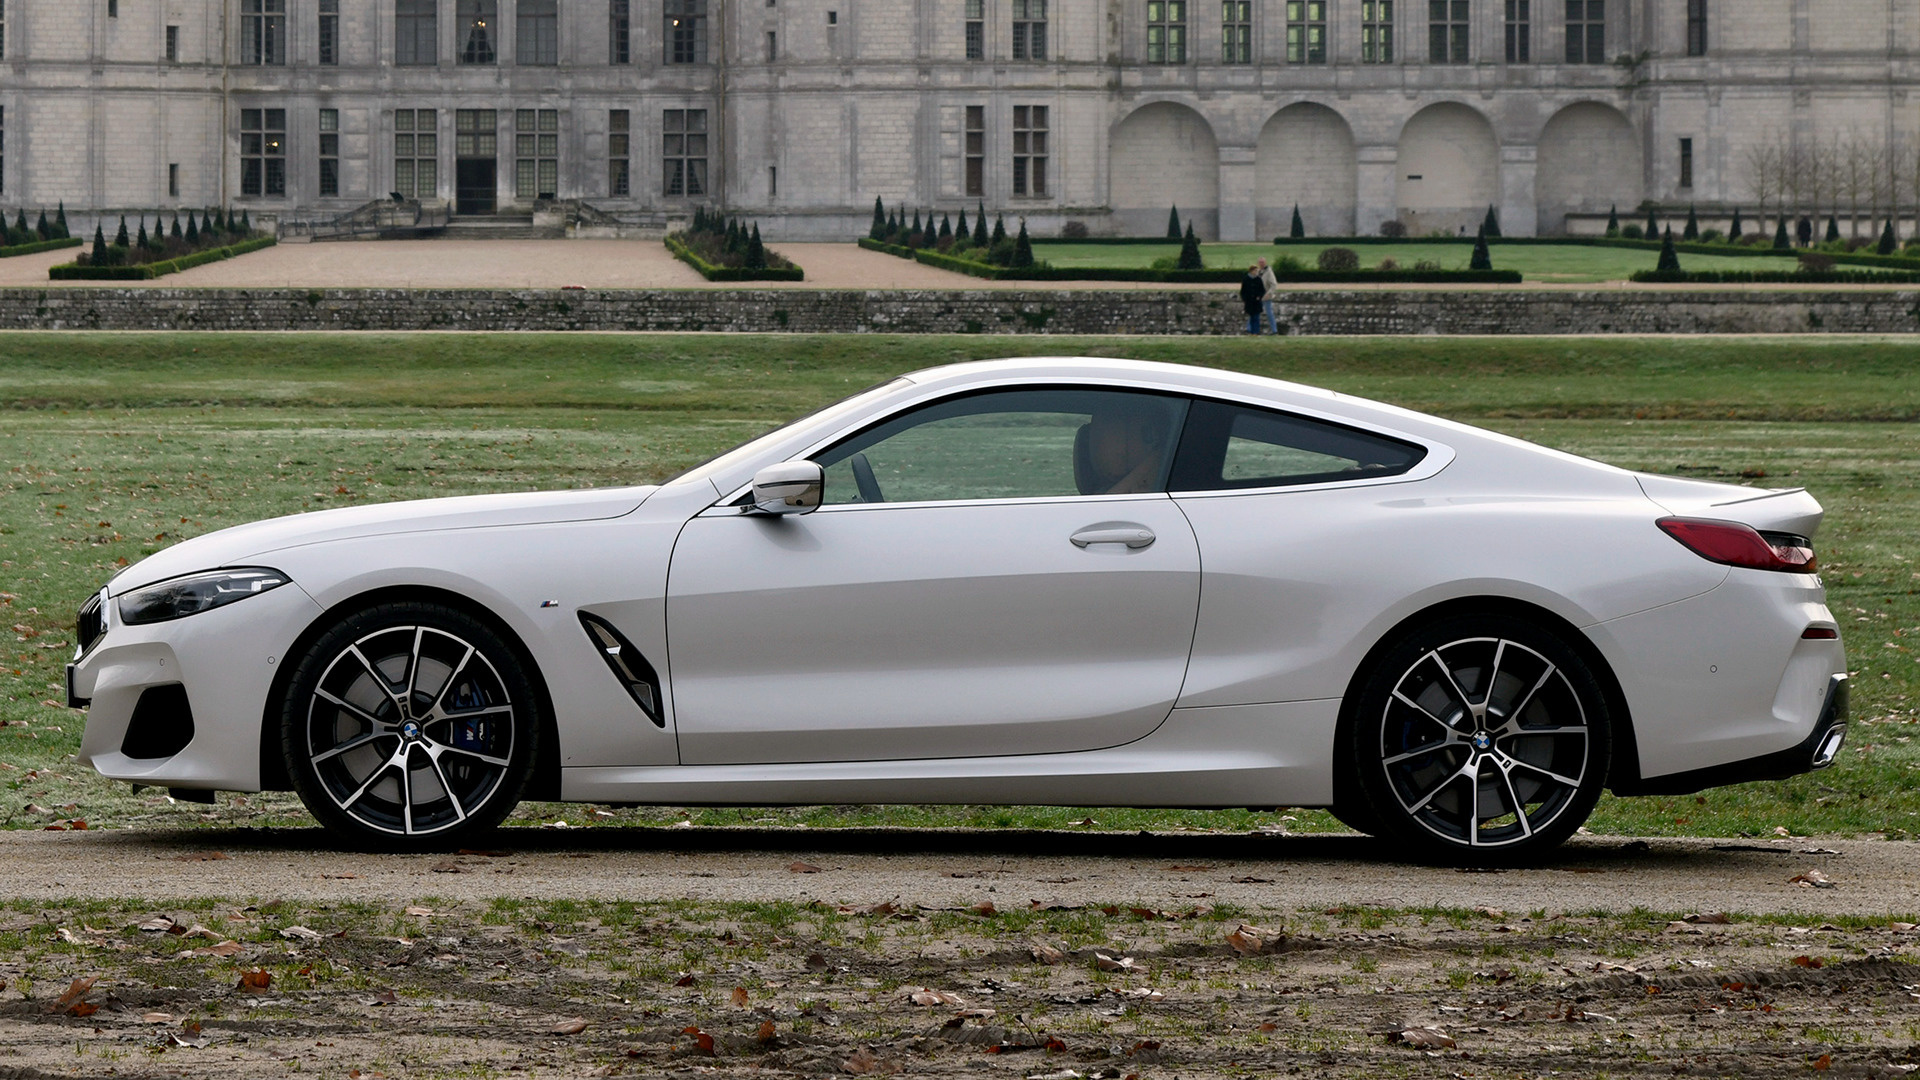 F Sport Lexus >> 2018 BMW 8 Series Coupe M Sport - Wallpapers and HD Images | Car Pixel